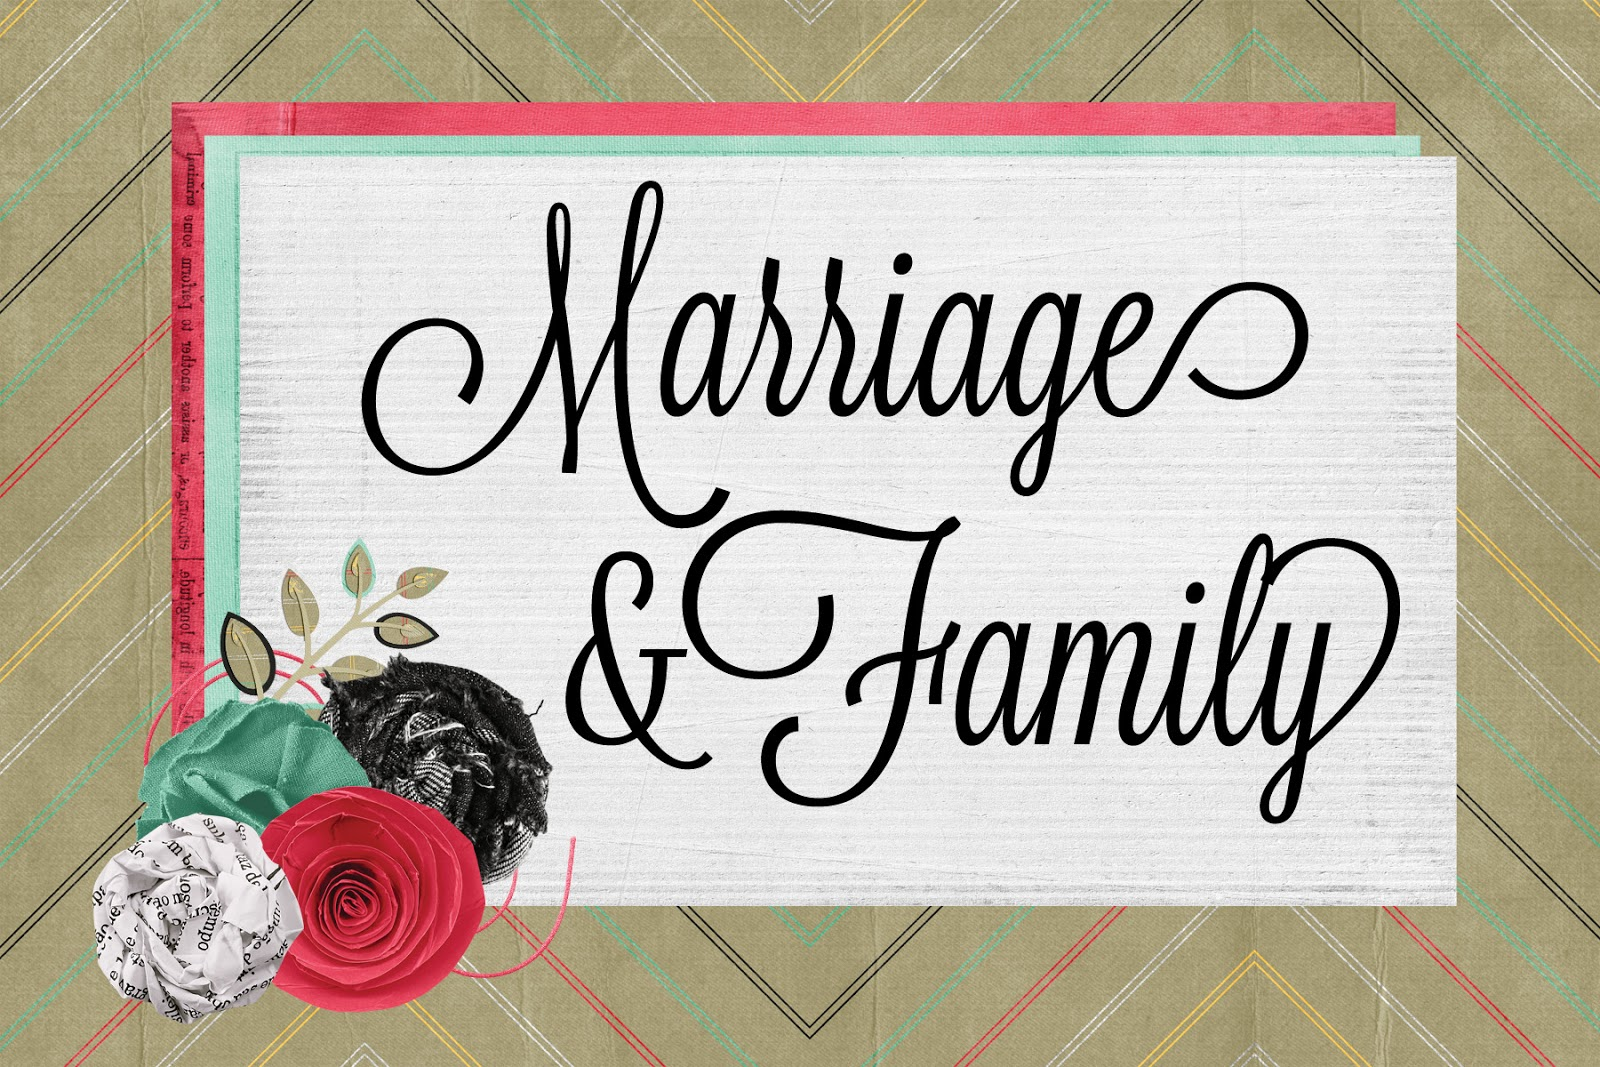 LDS Handouts: Marriage And Family: Why Is Temple Marriage